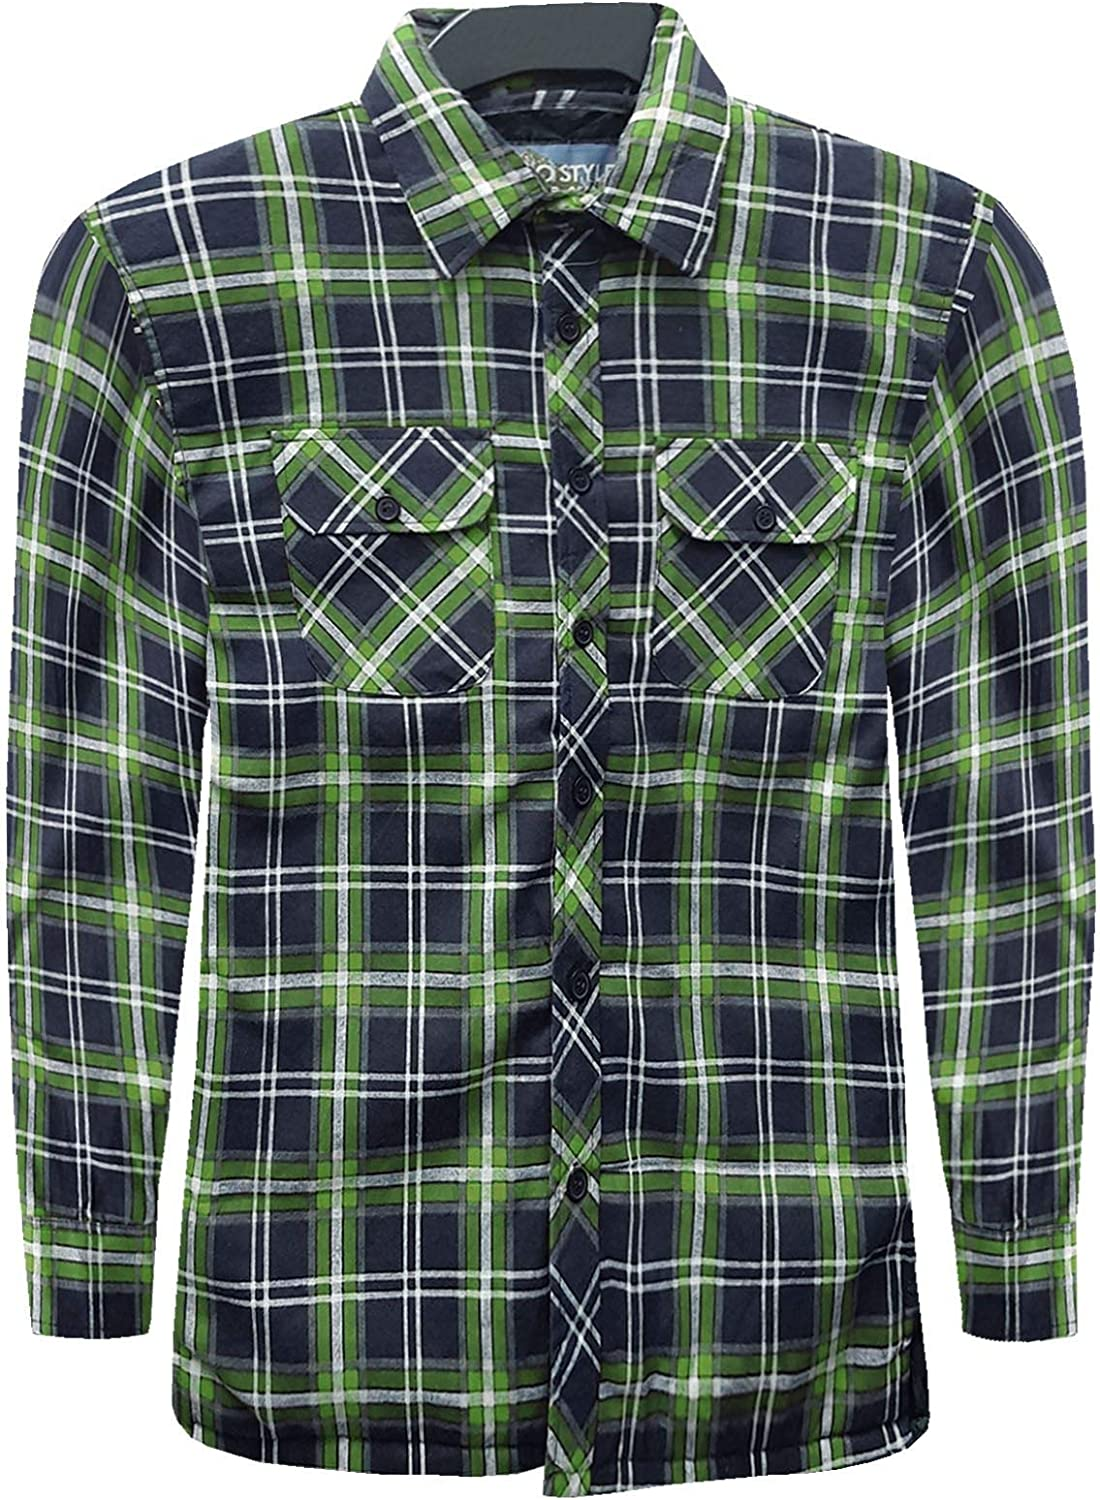 MENS PADDED THICK LUMBER JACK SHIRT QUILTED LINED CHECK WORKER WARM WINTER M L XL XXL